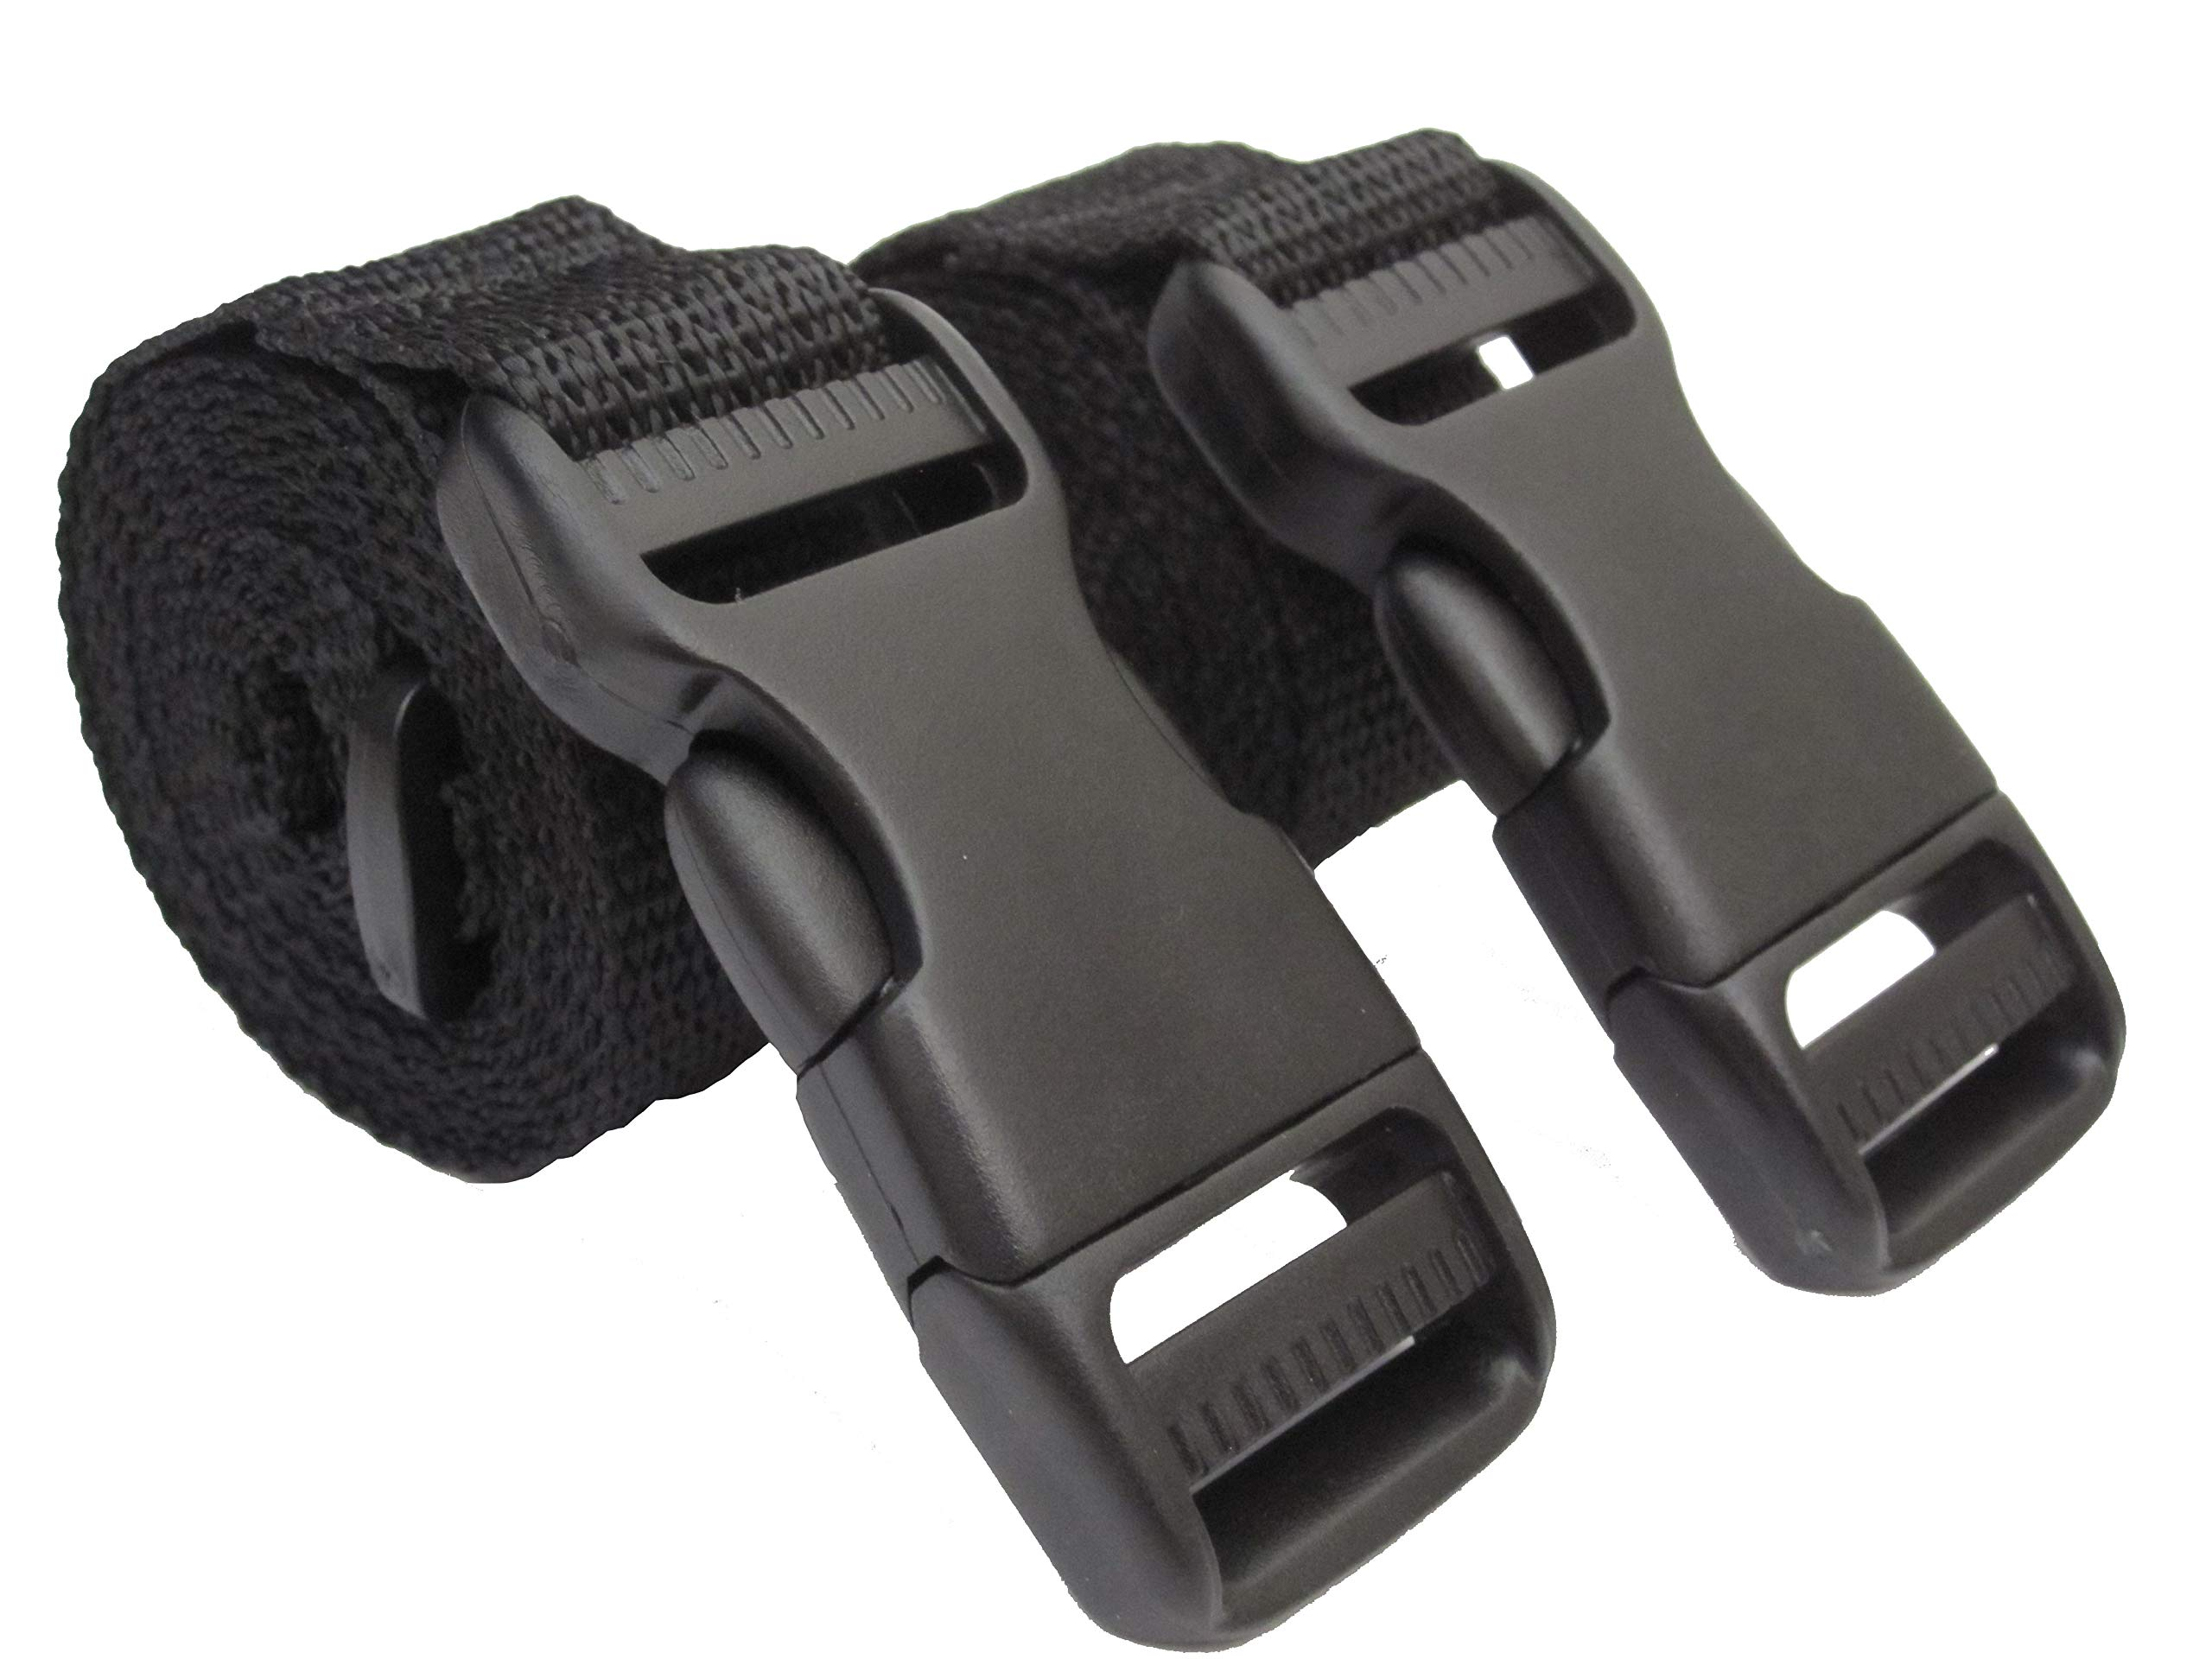 Molle Backpack Accessory Straps Quick Release Buckle Made in USA